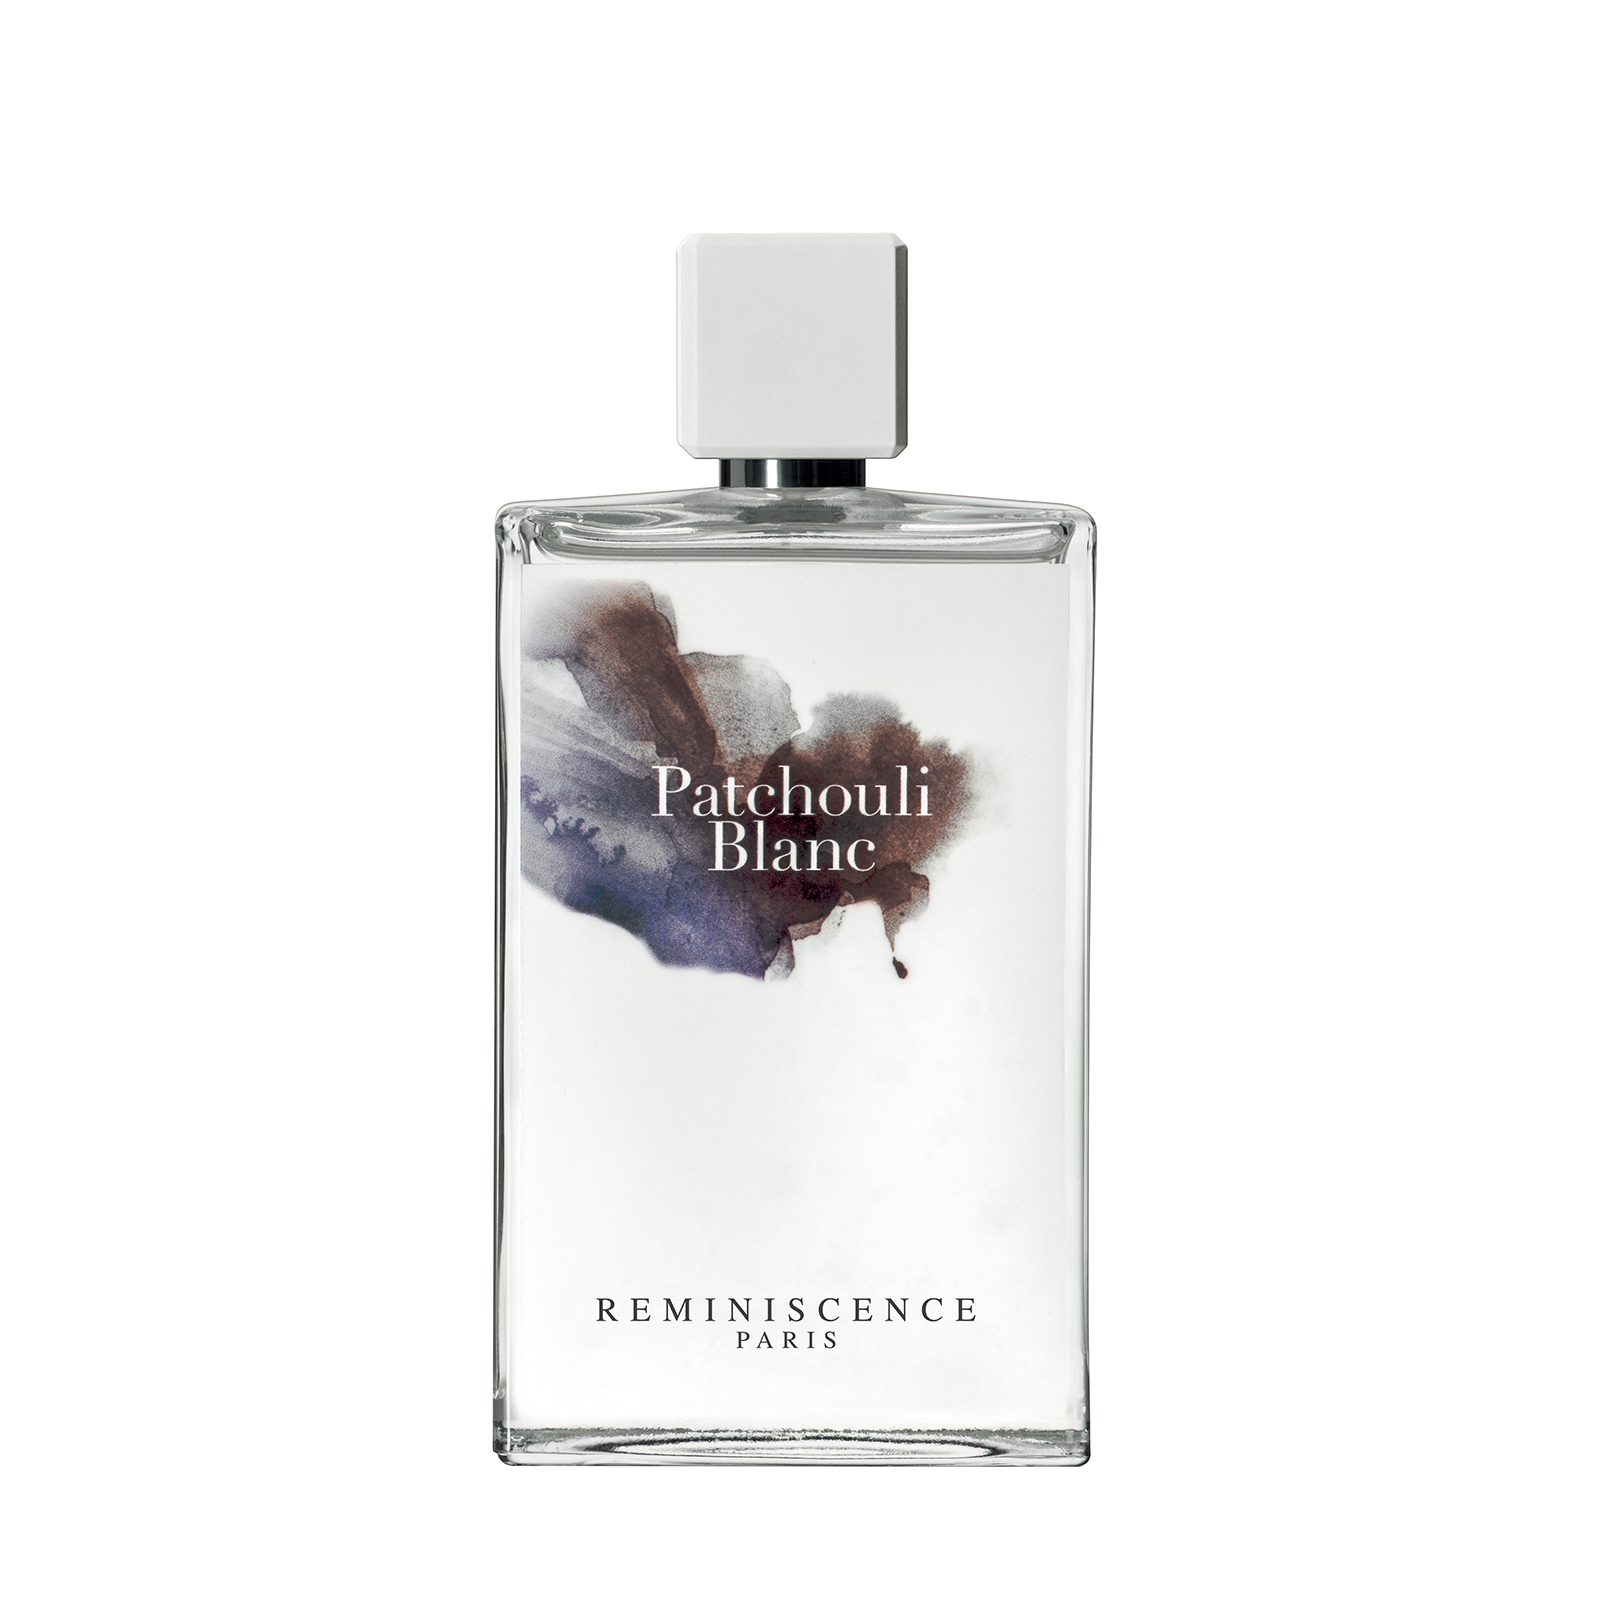 patchouli blanc reminiscence 55€